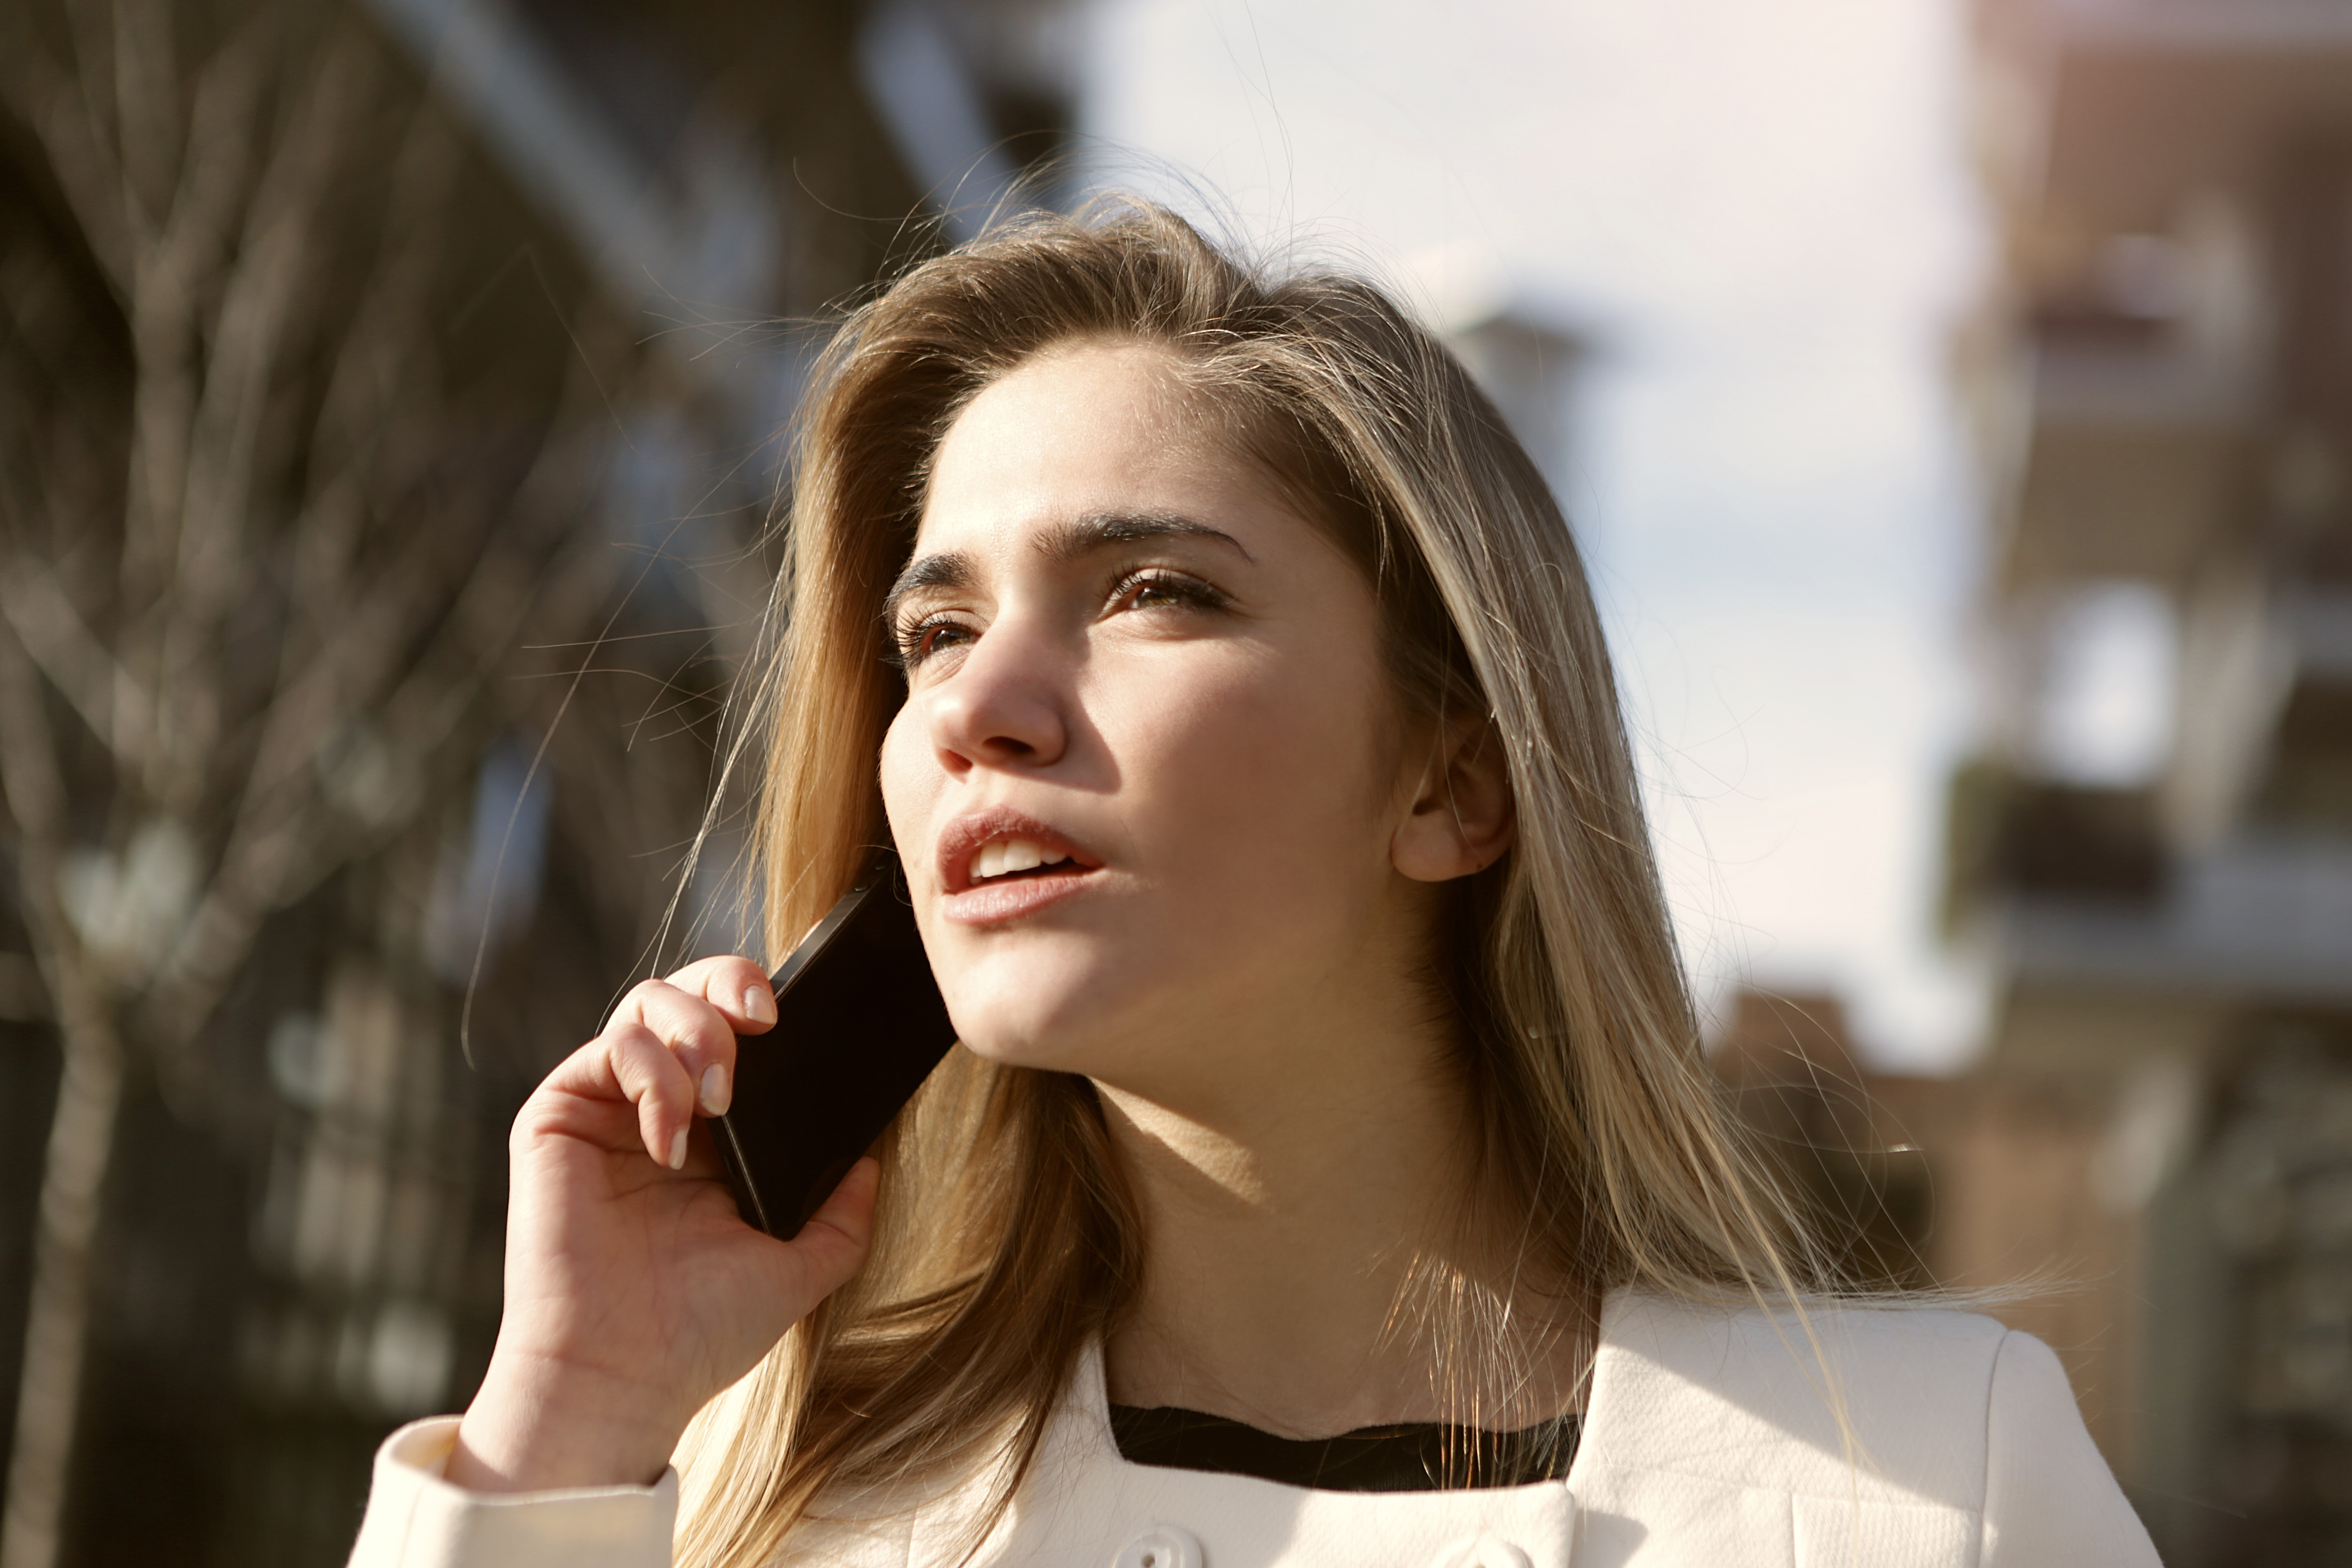 Selective focus photography of woman standing wearing white coat holding smartphone